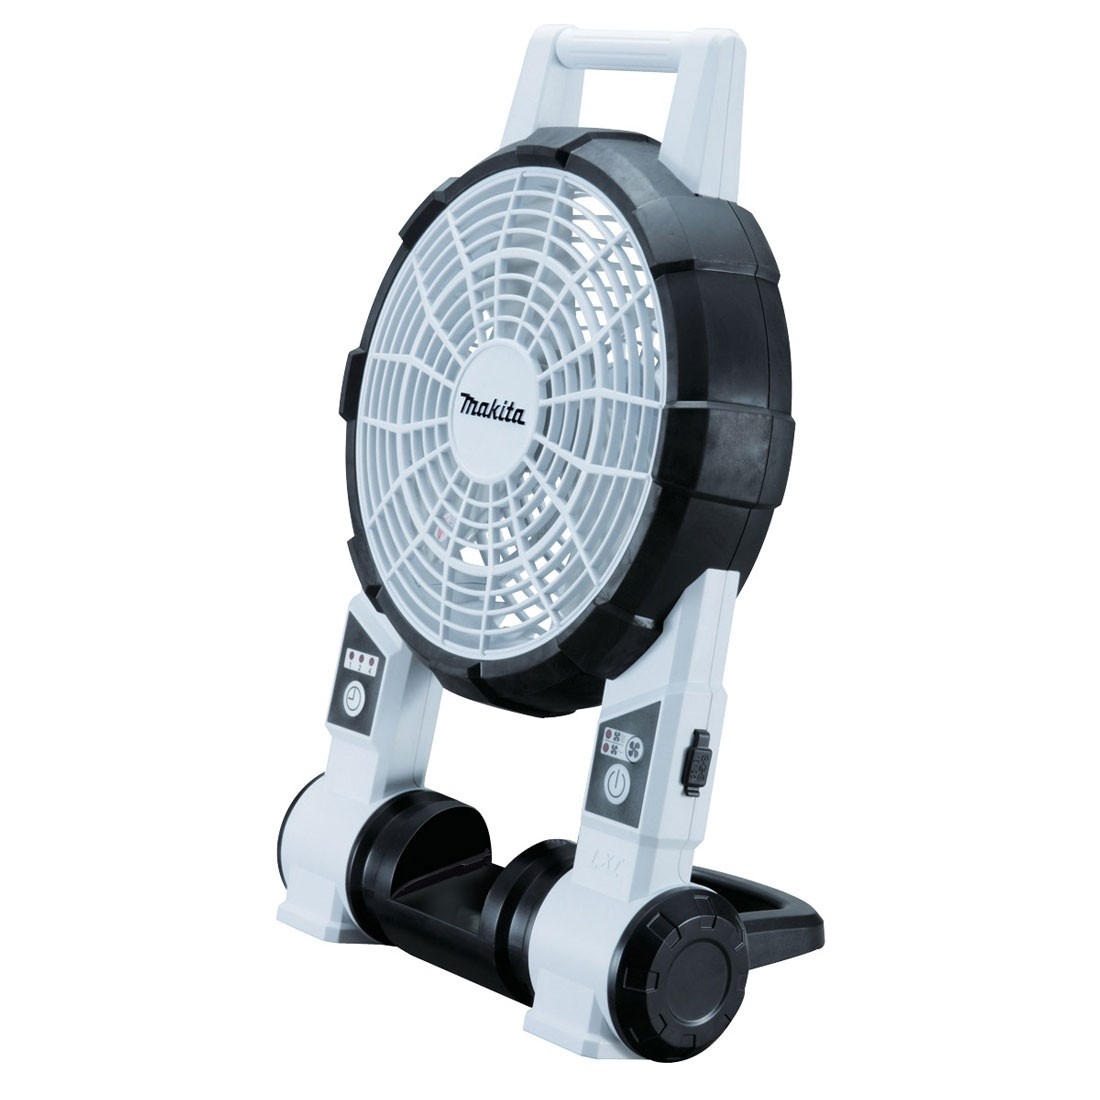 Mini Ventilator Batterie Makita Dcf201zw 18v Lxt Cordless Fan White Body Only